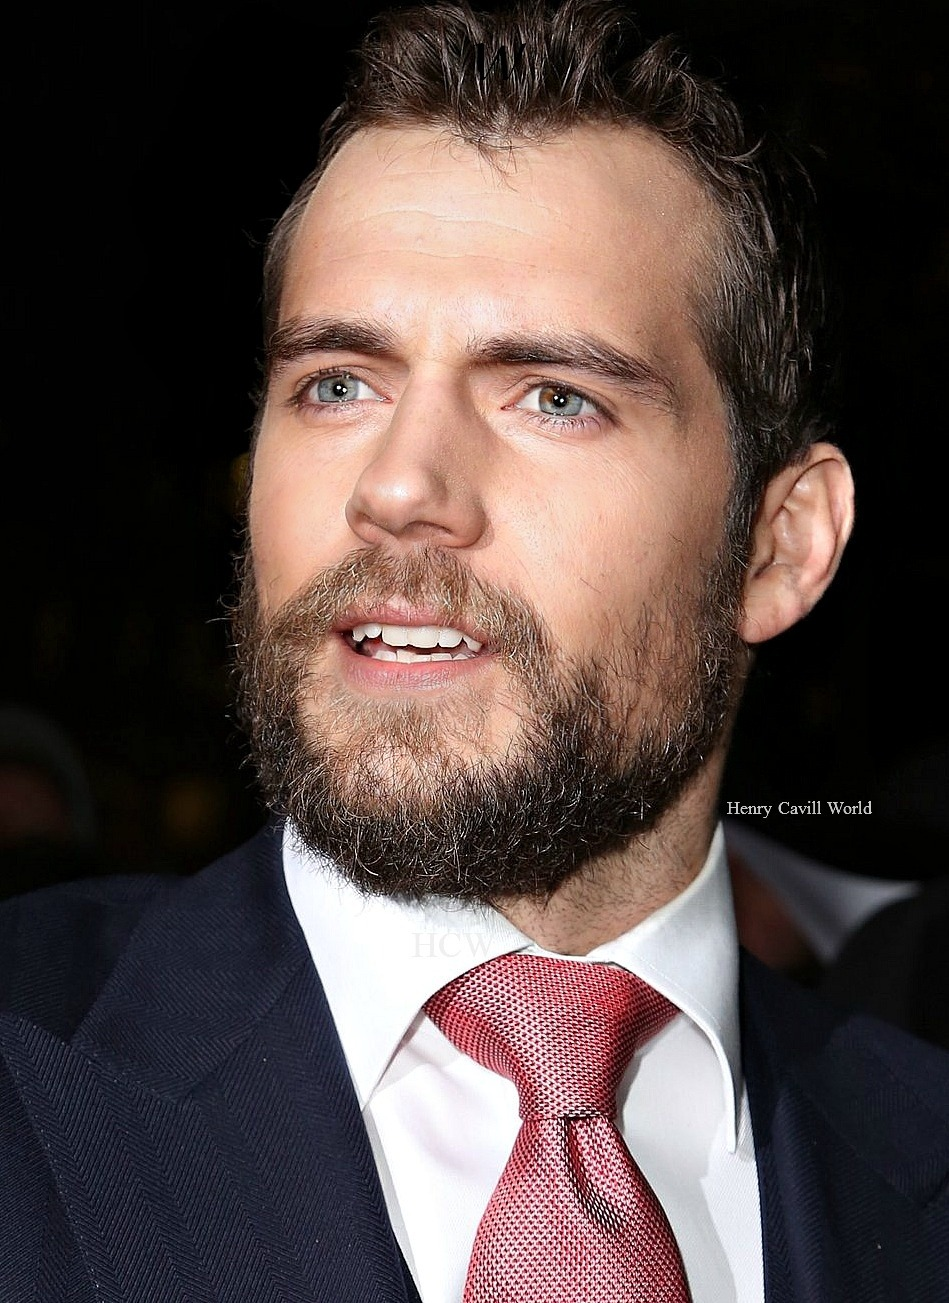 Henry Cavill World Henry Cavill At The 2015 EEBAFTAS At The Royal